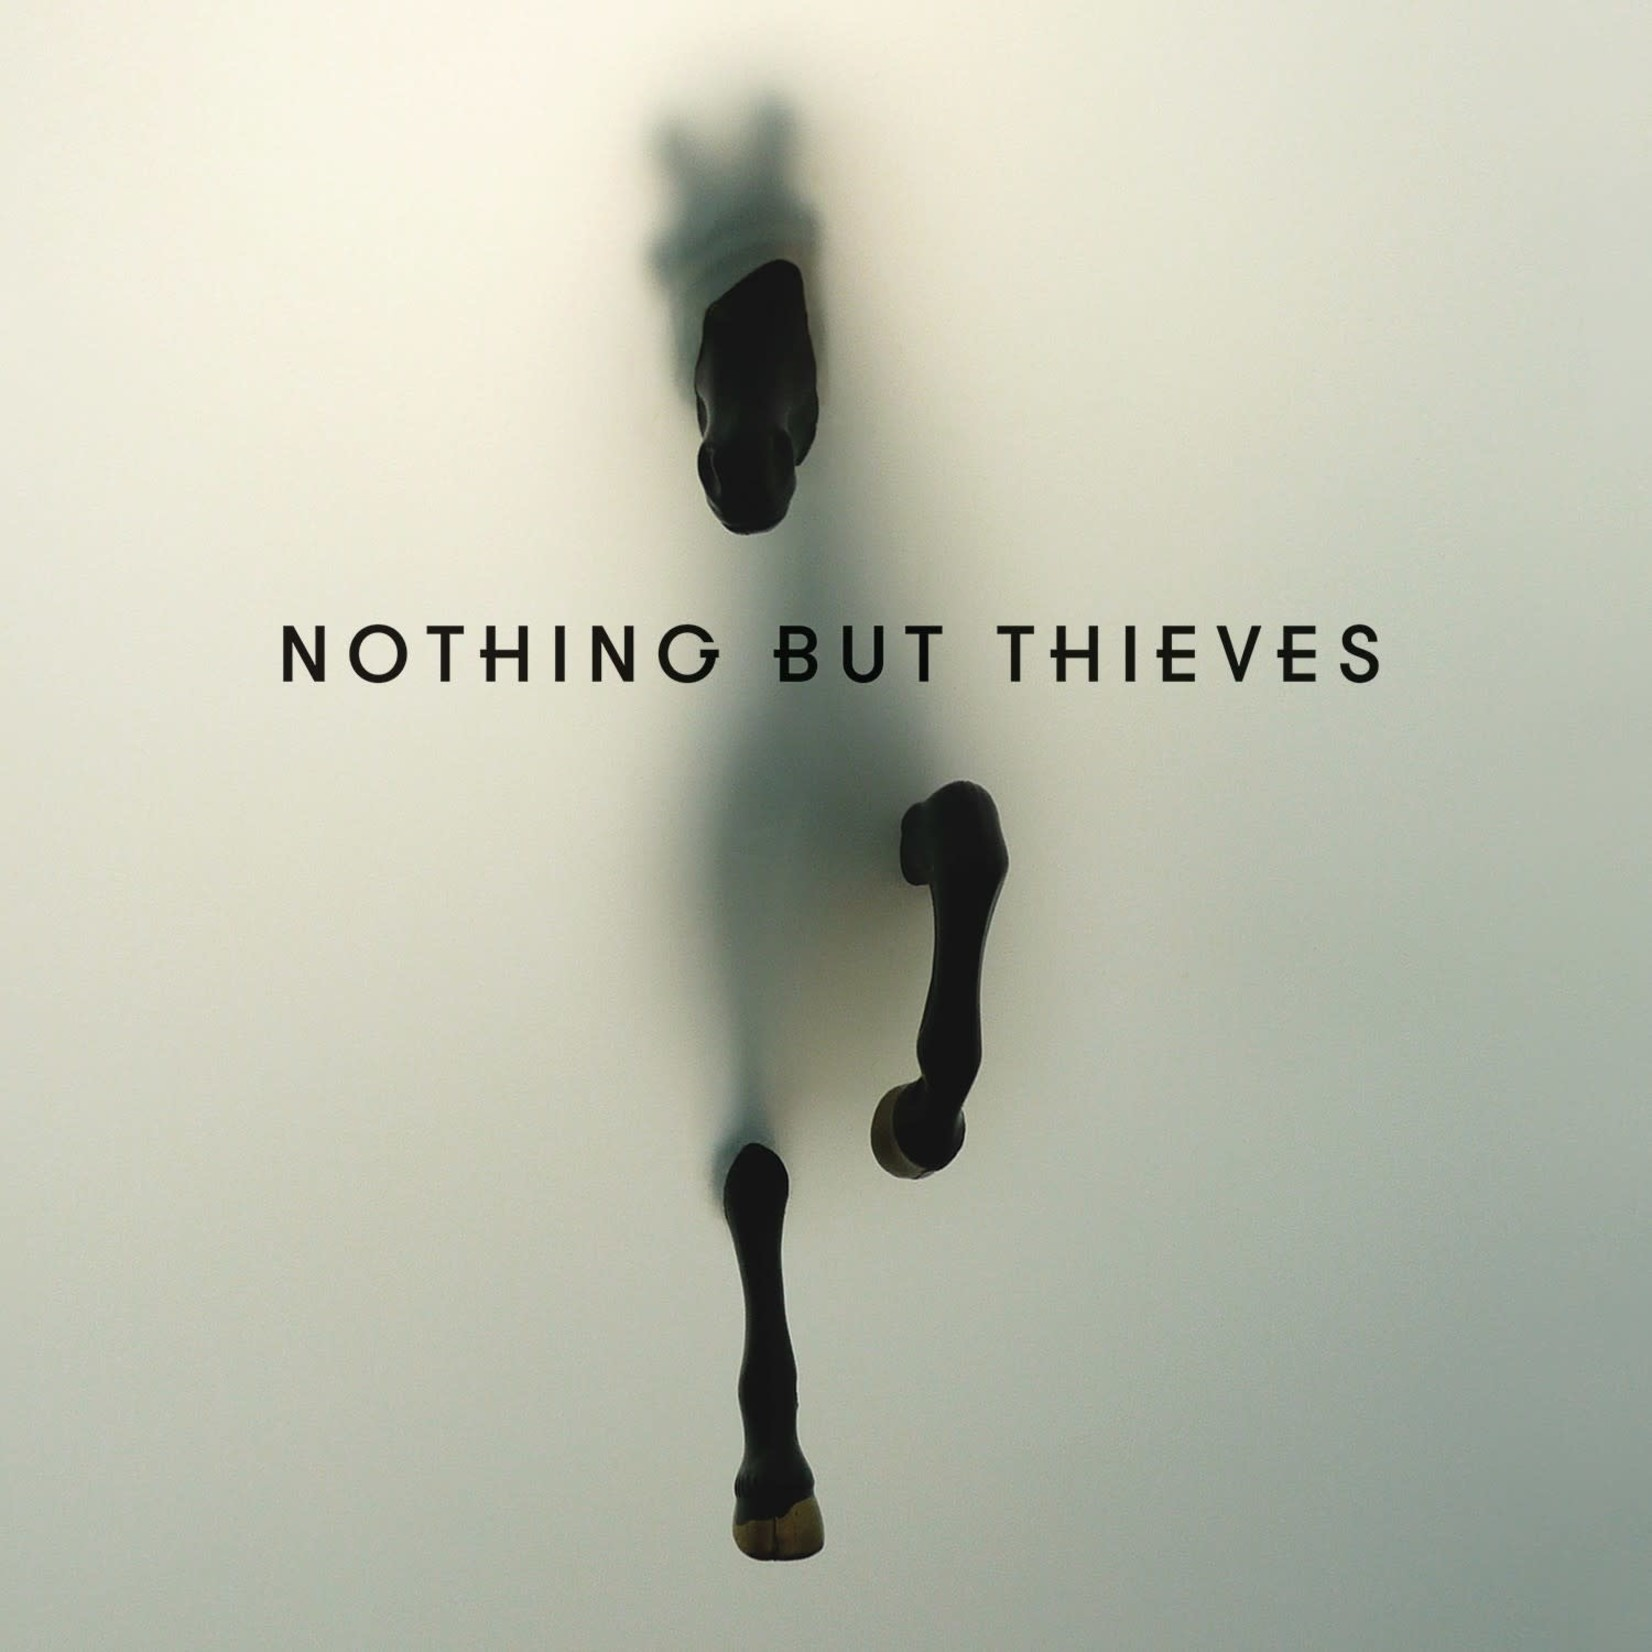 [New] Nothing But Thieves: Nothing But Thieves